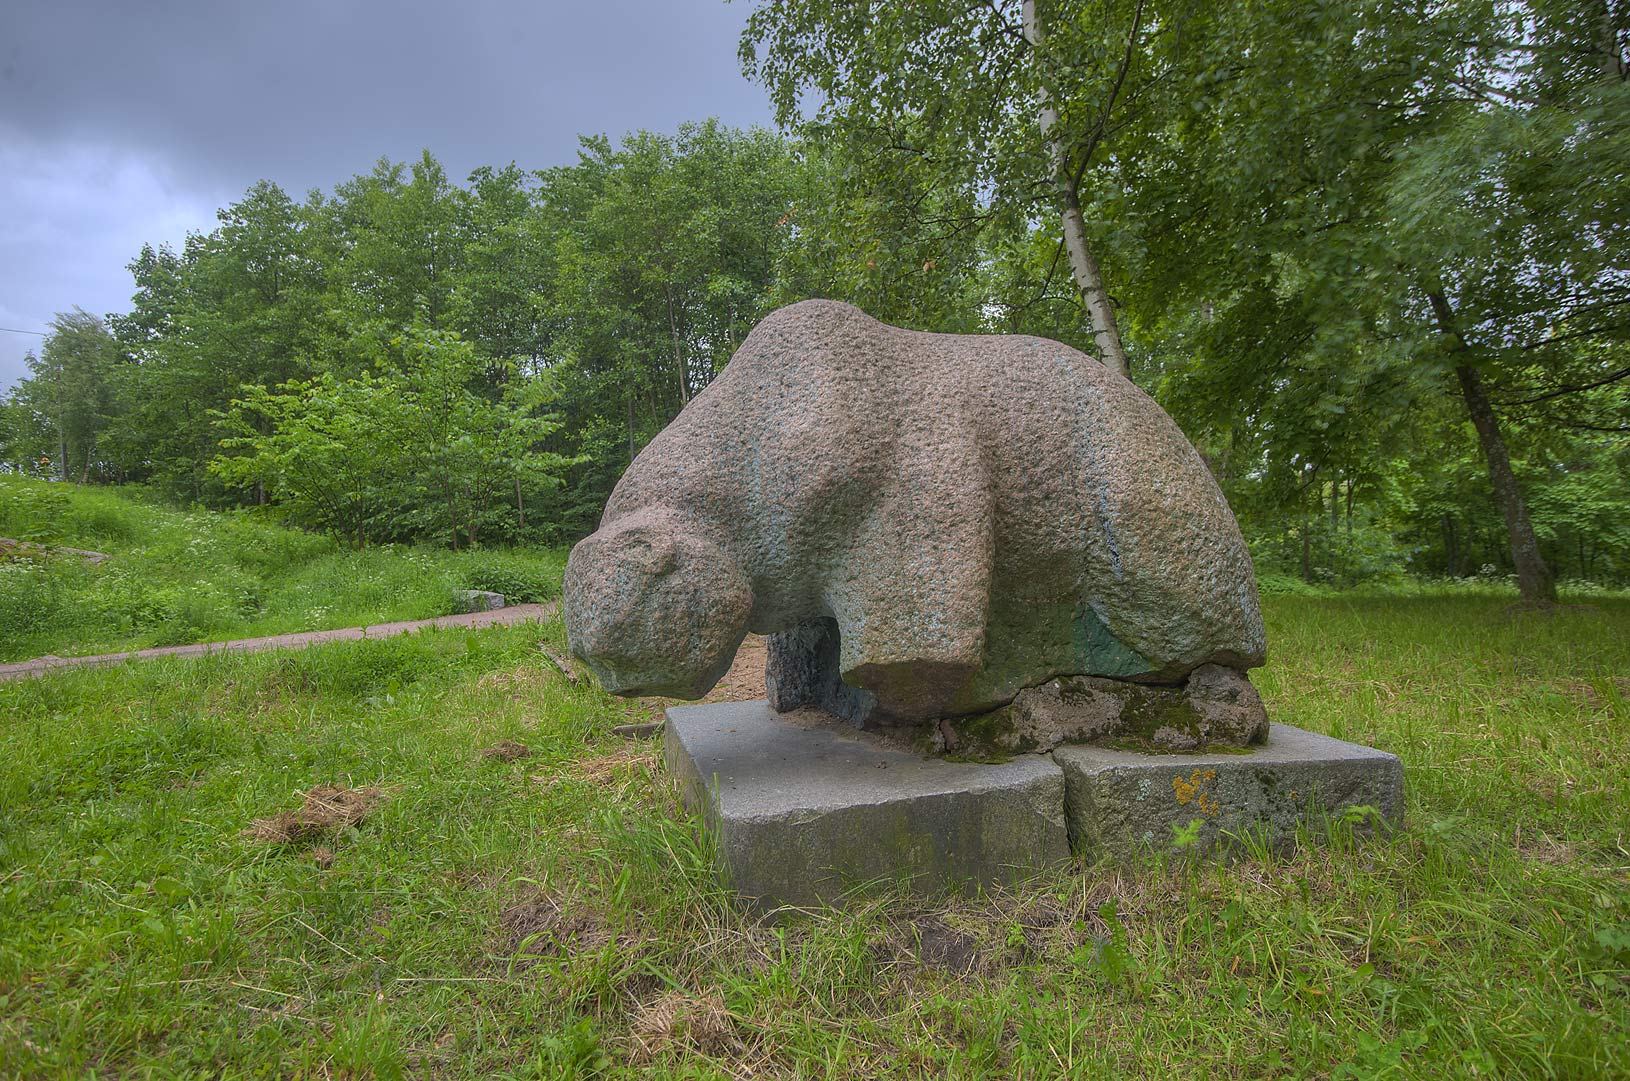 One of granite bears from a demolished train...Intendantsky Proezd. Vyborg, Russia